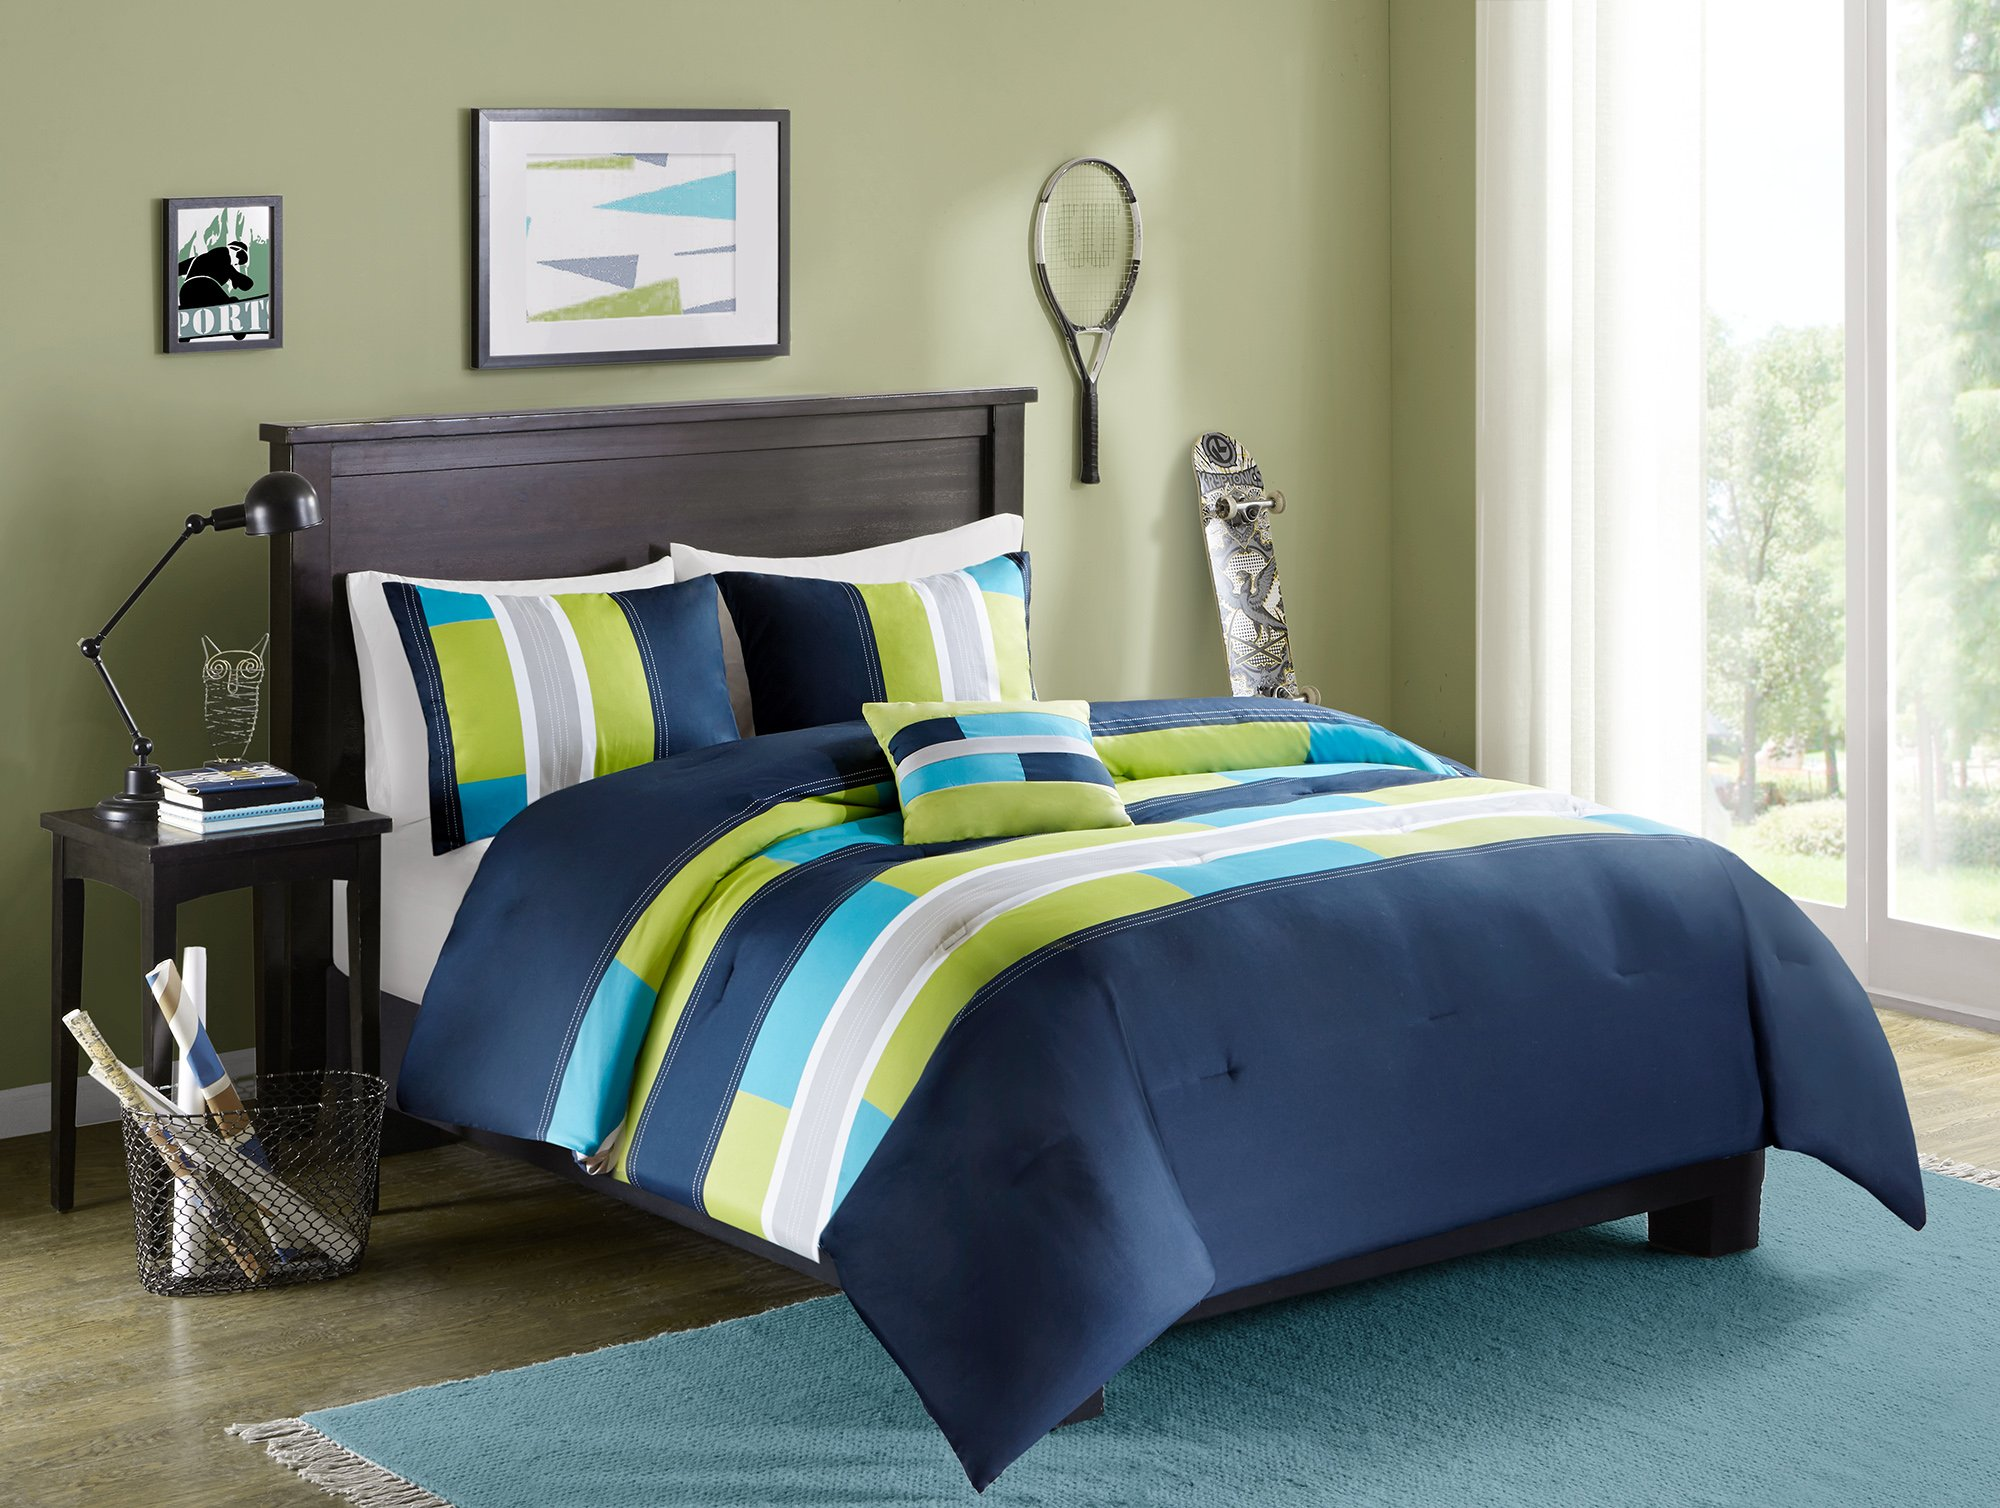 Comfort Spaces Pierre 3 Piece Comforter Set All Season Ultra Soft Hypoallergenic Microfiber Pipeline Stripe Boys Dormitory Bedding, Twin/Twin XL, Navy Blue by Comfort Spaces